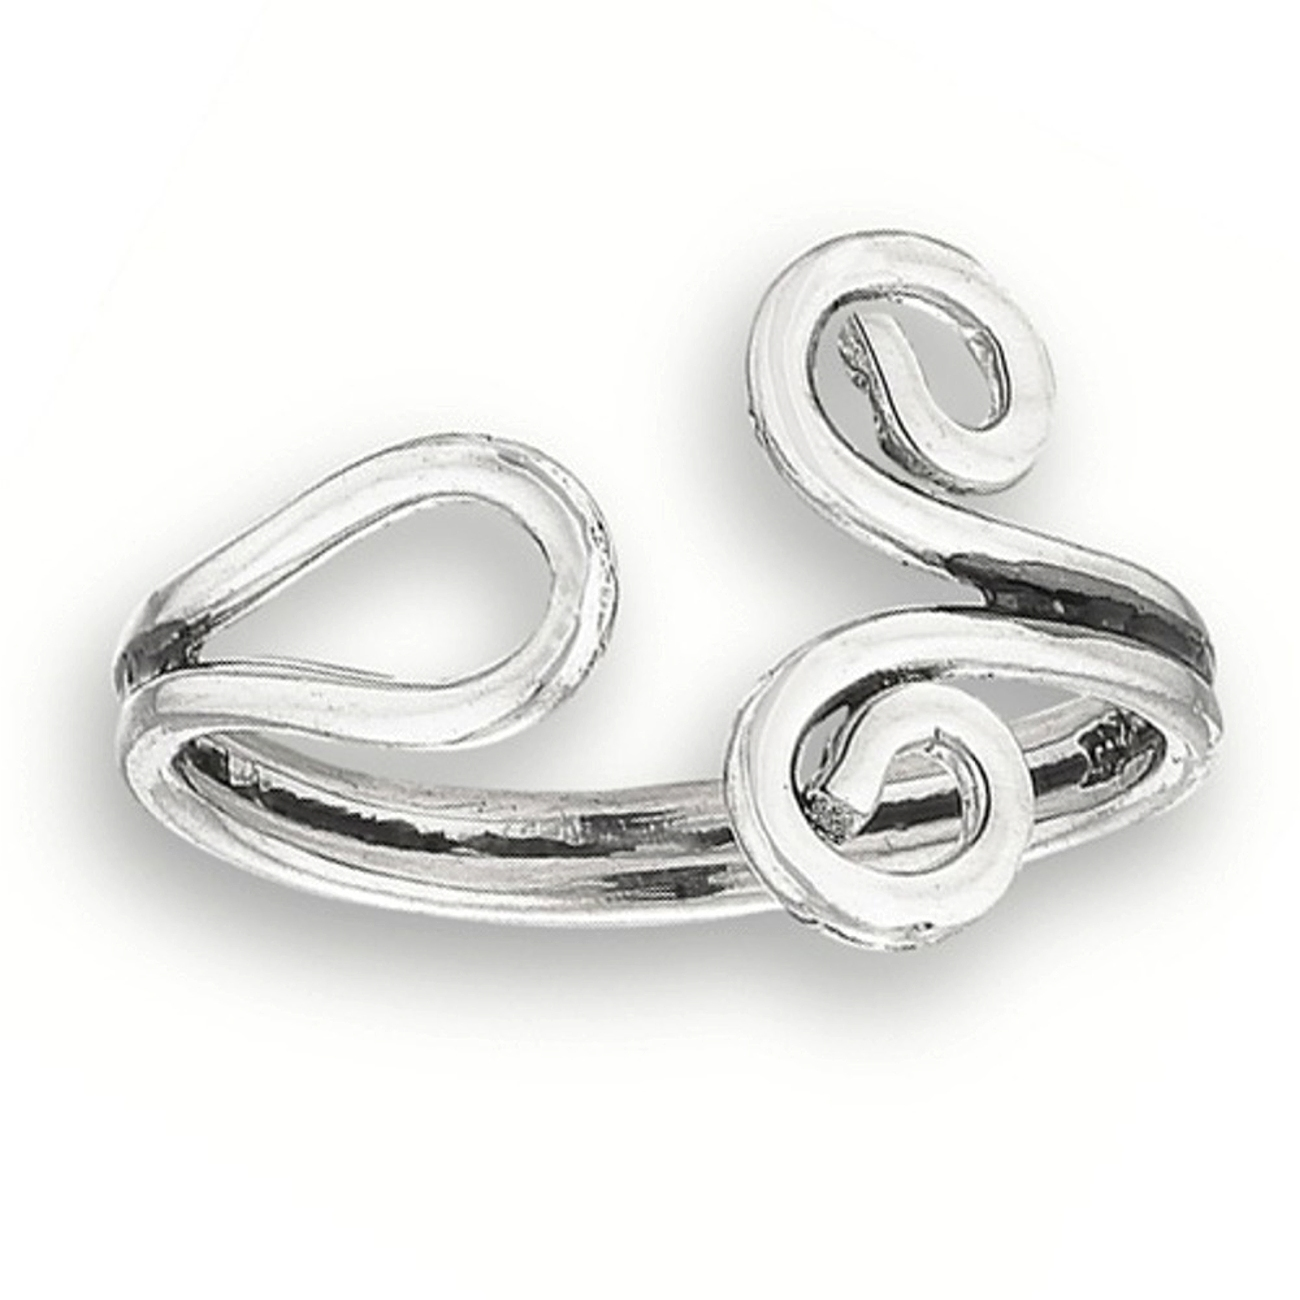 Bypass Wrap Curled Ends Adjustable Wire Toe Ring